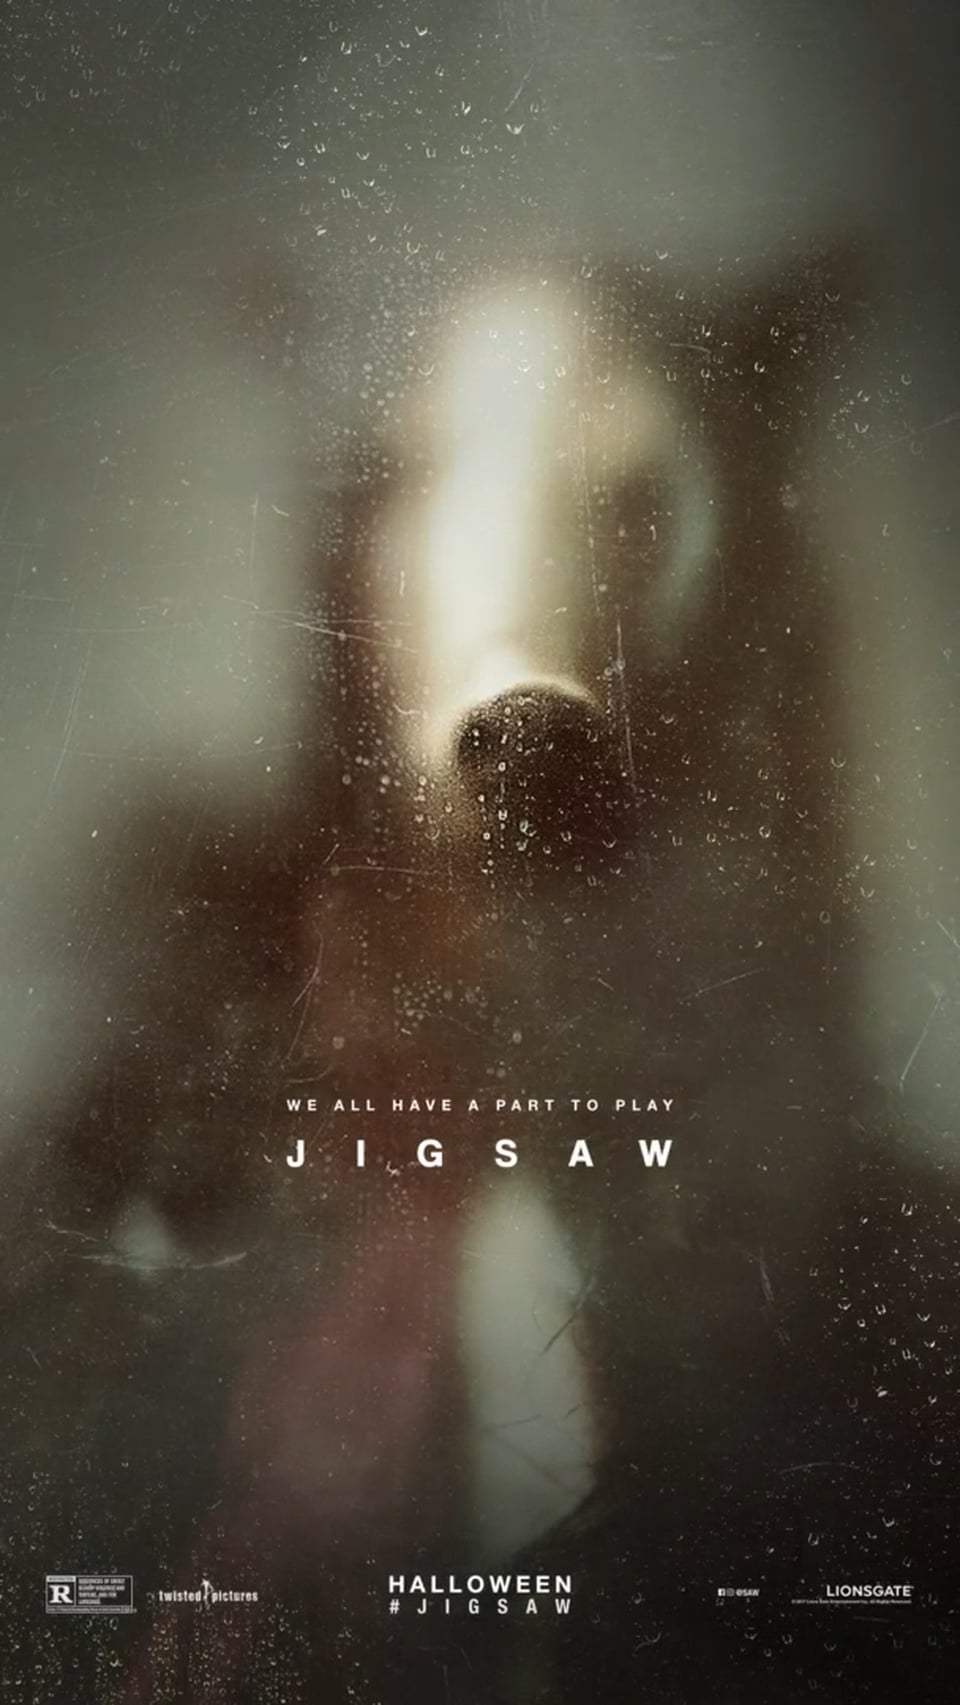 Jigsaw: We All Have a Part to Play